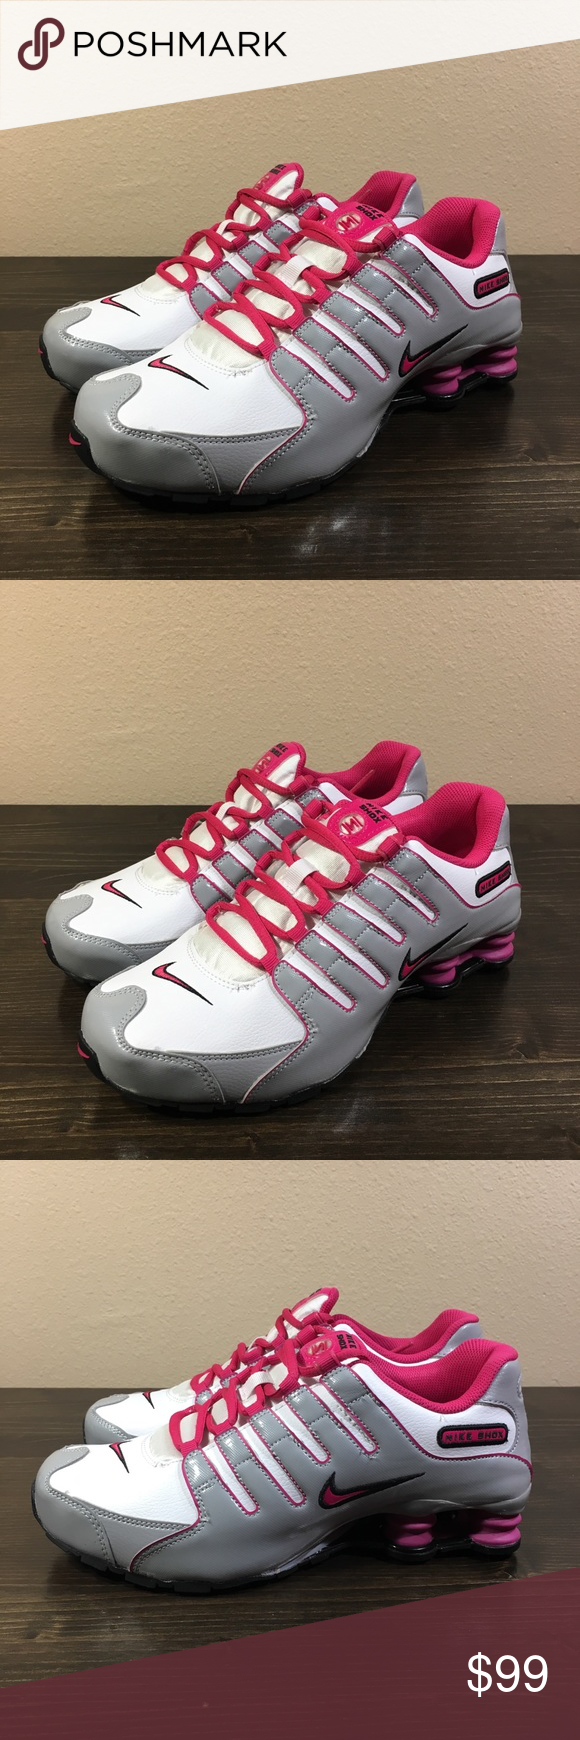 Nike Shox NZ GS Running Shoes Brand New without Box 6.5Y (Women s size 8 ed01ab700